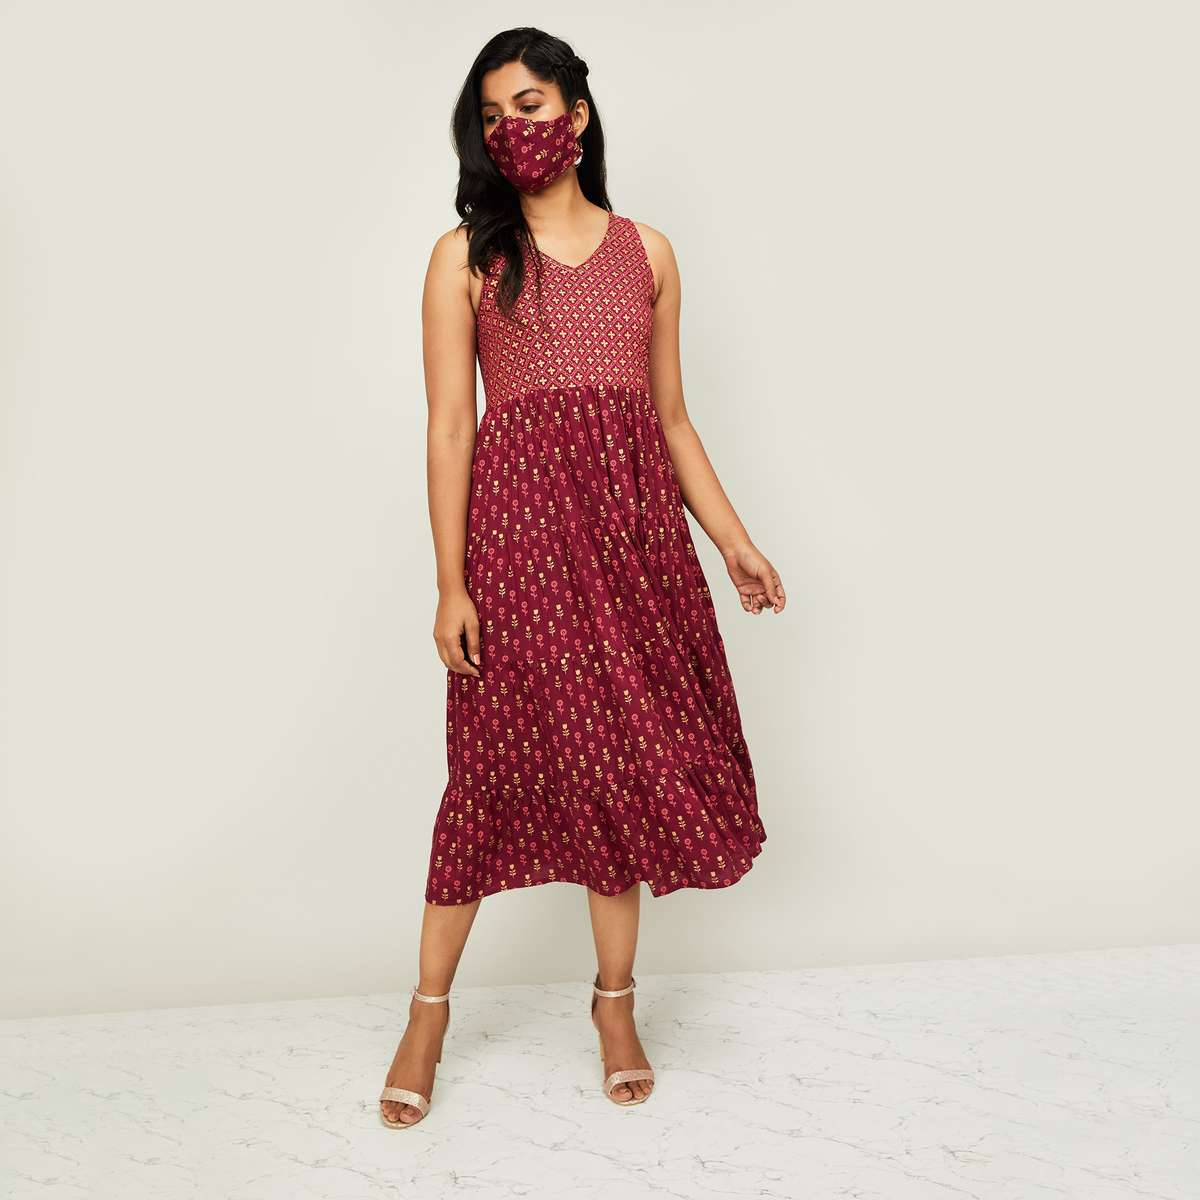 3.COLOUR ME Women Printed Sleeveless Dress with a Mask